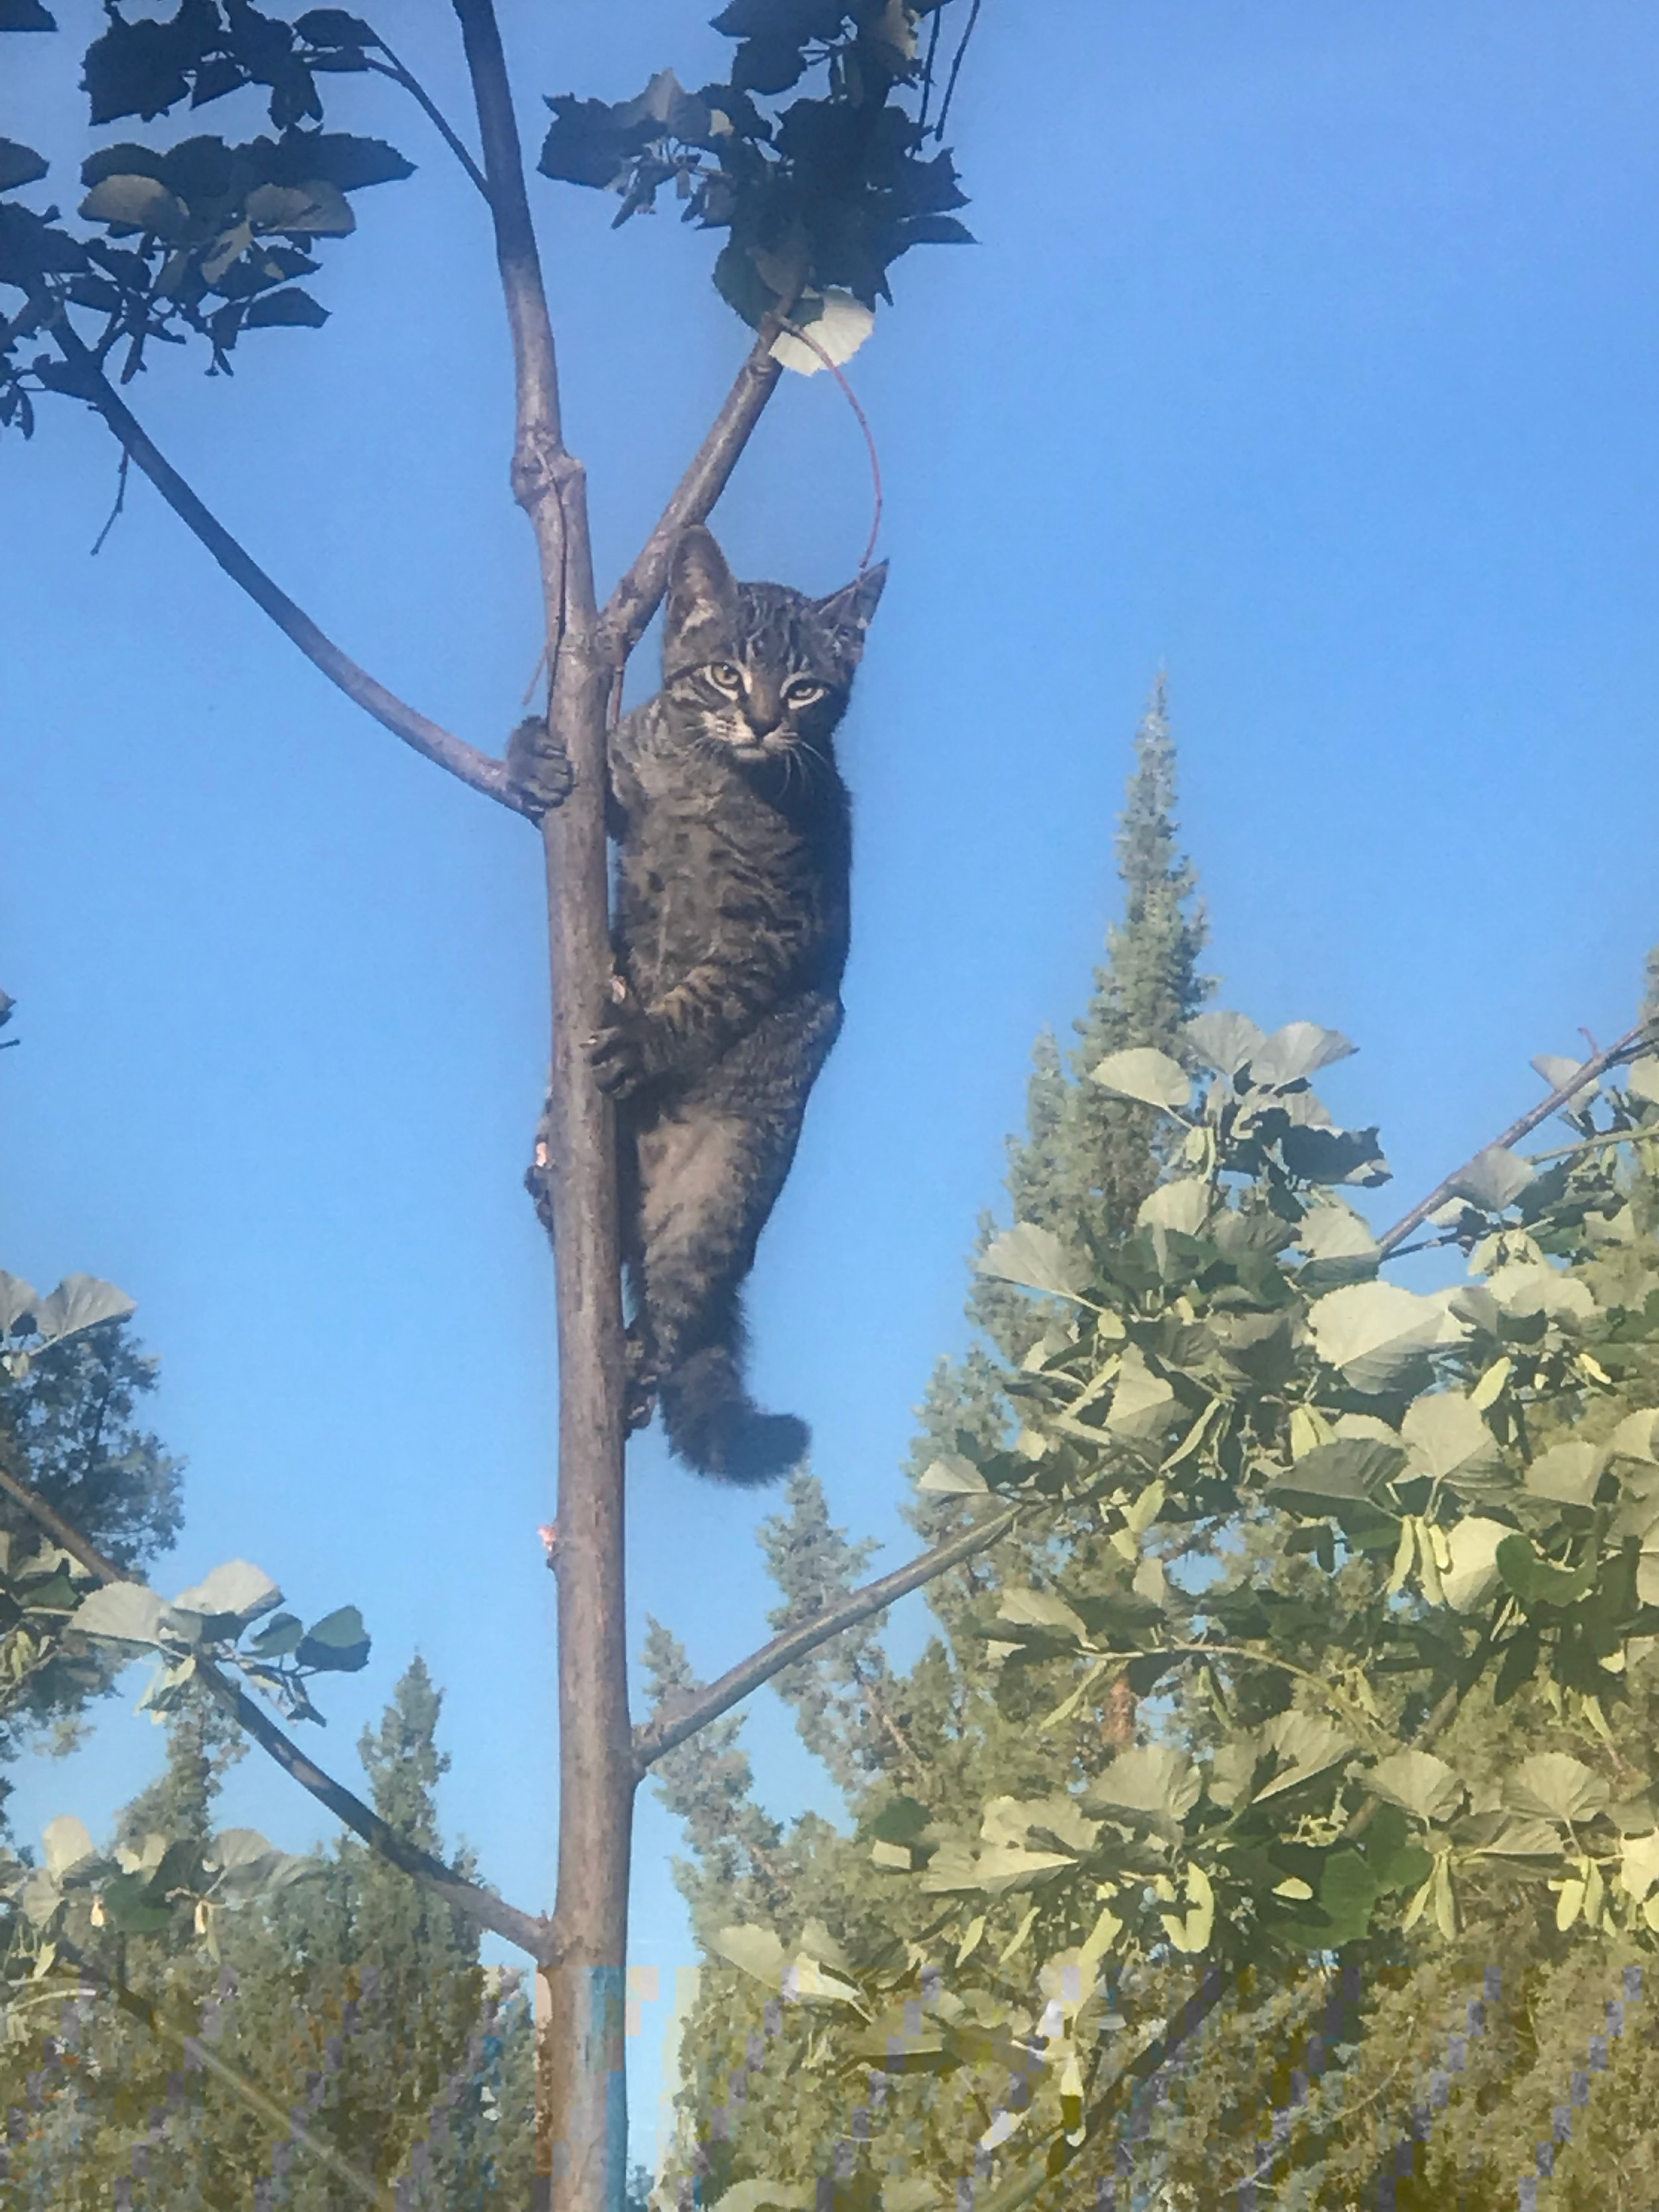 I have found also that Linden is a great tree for kittens to who are learning to climb. Linden gives so much, sometimes even branches so that others around may grow and learn!